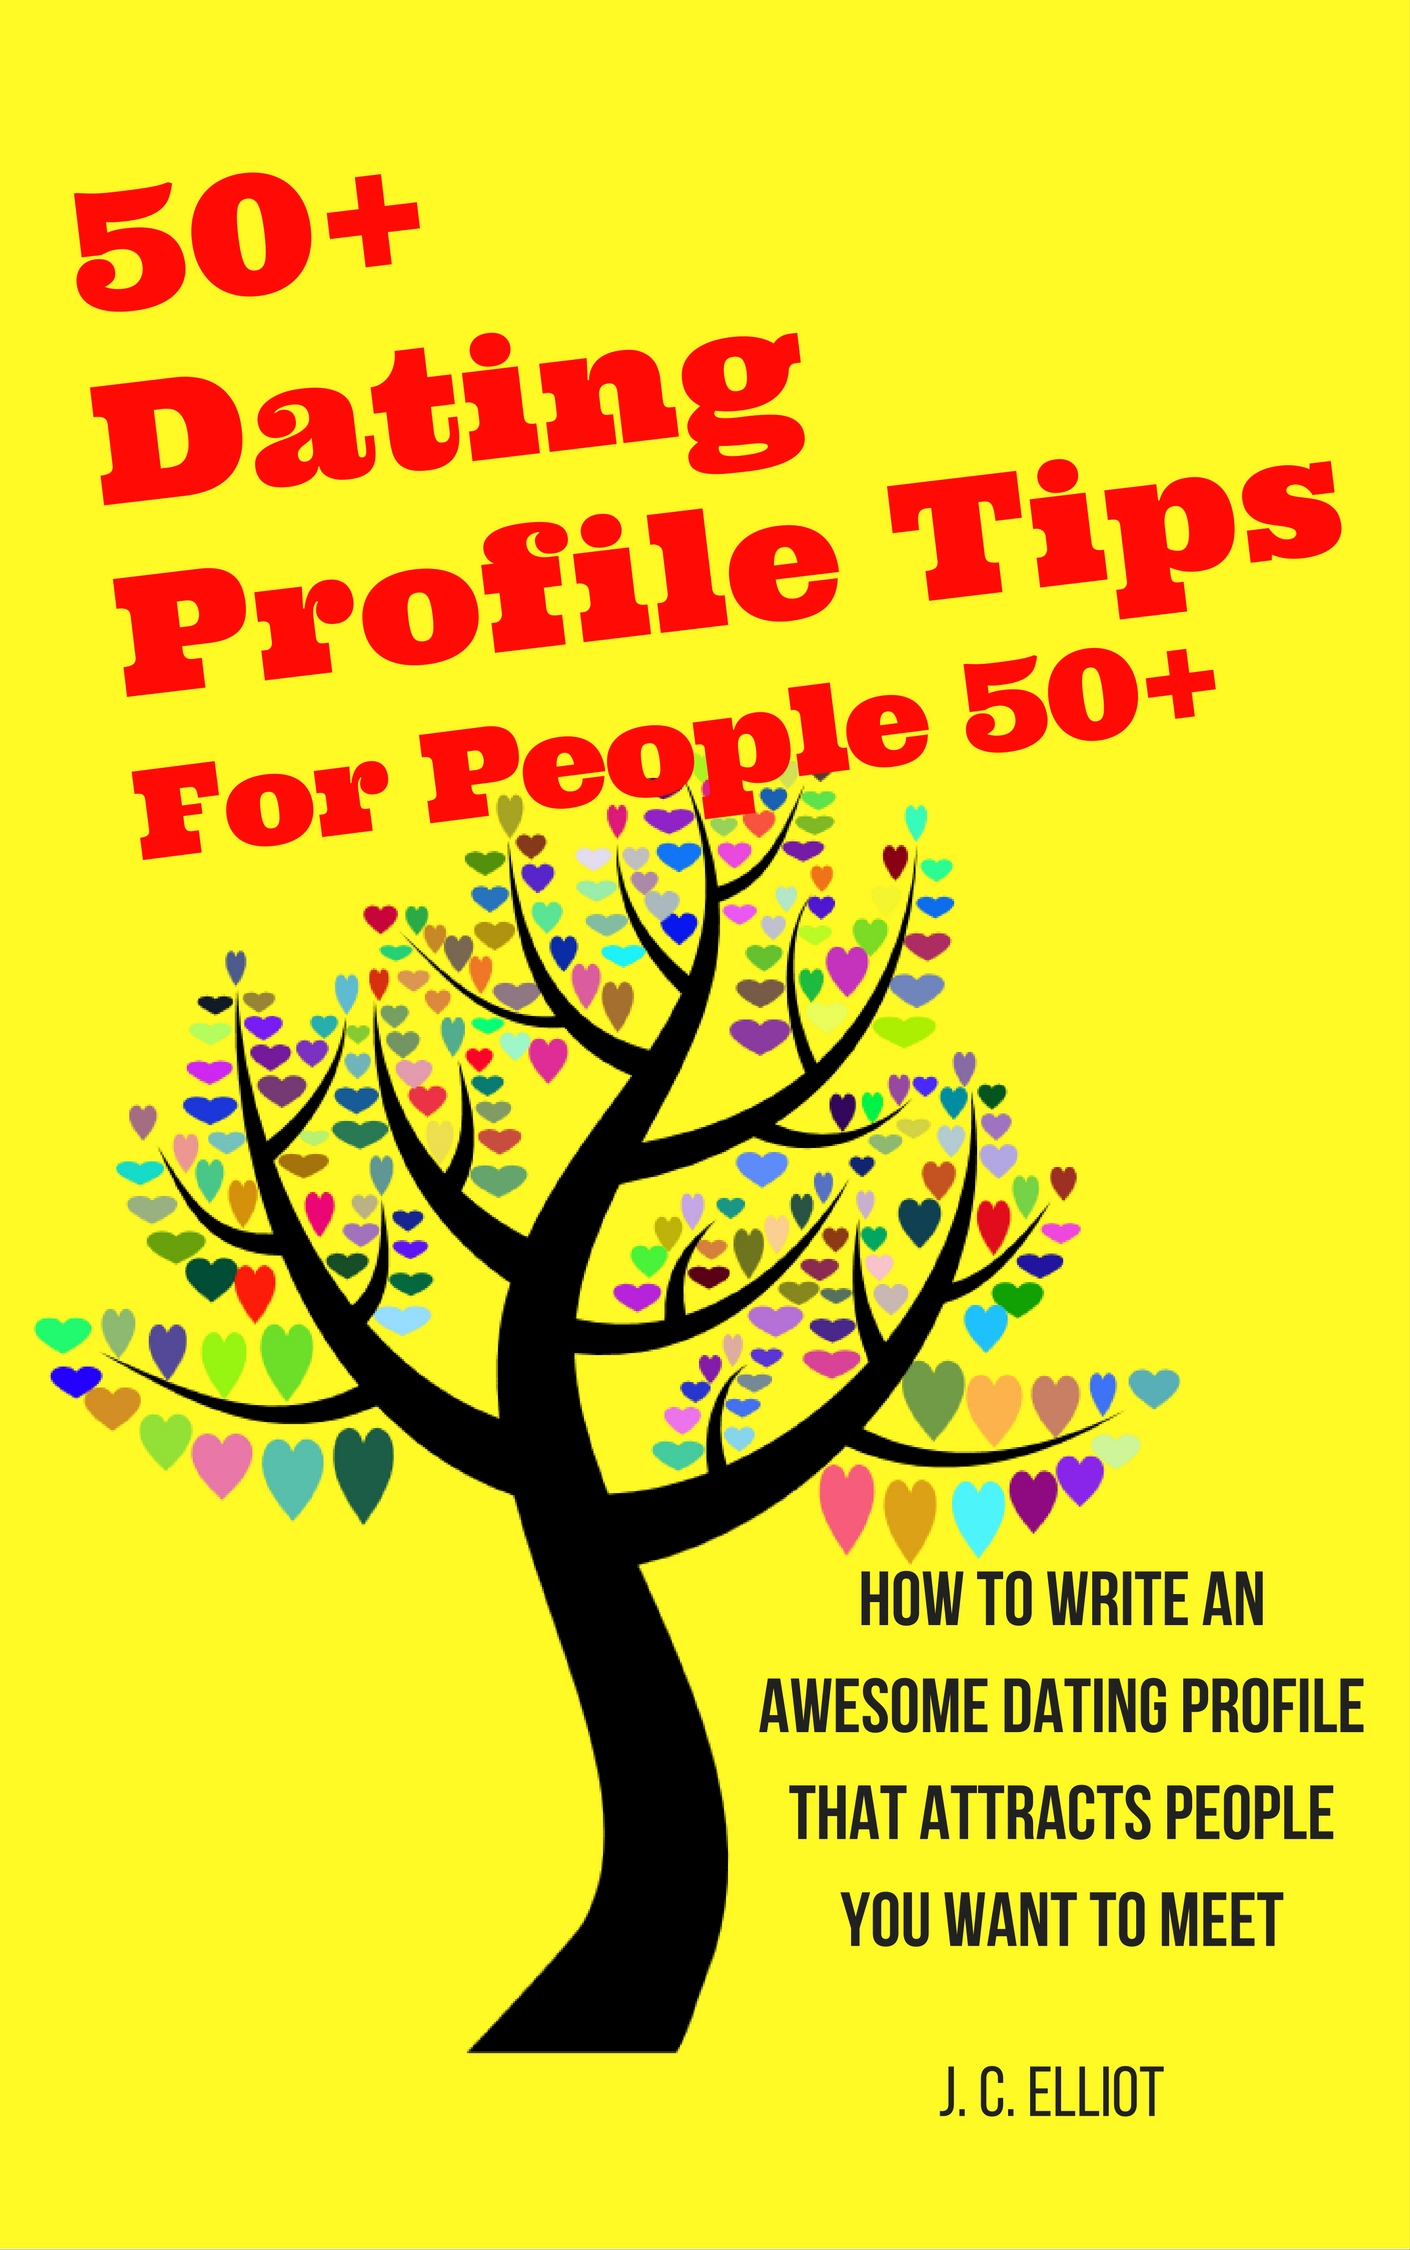 Dating profile tips